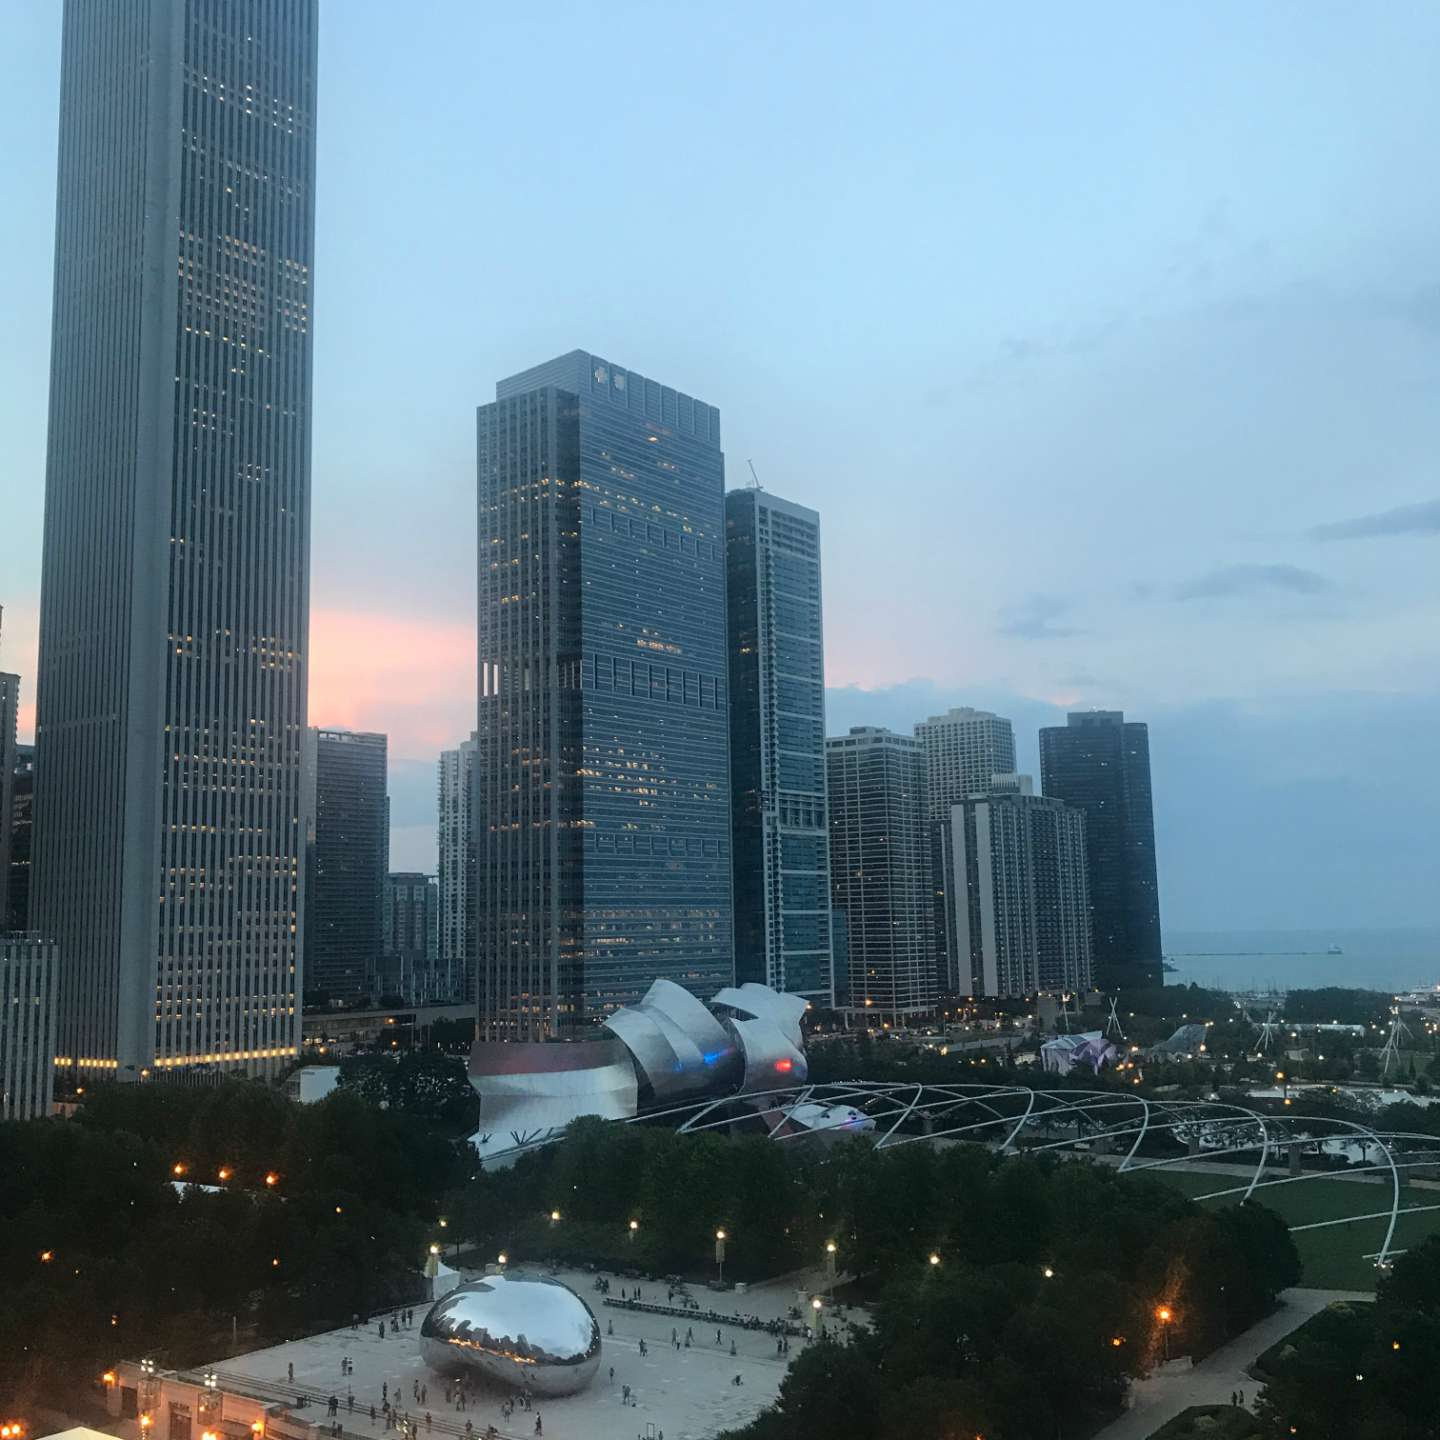 Chicago Travel Guide by NC blogger I'm Fixin' To - @mbg0112